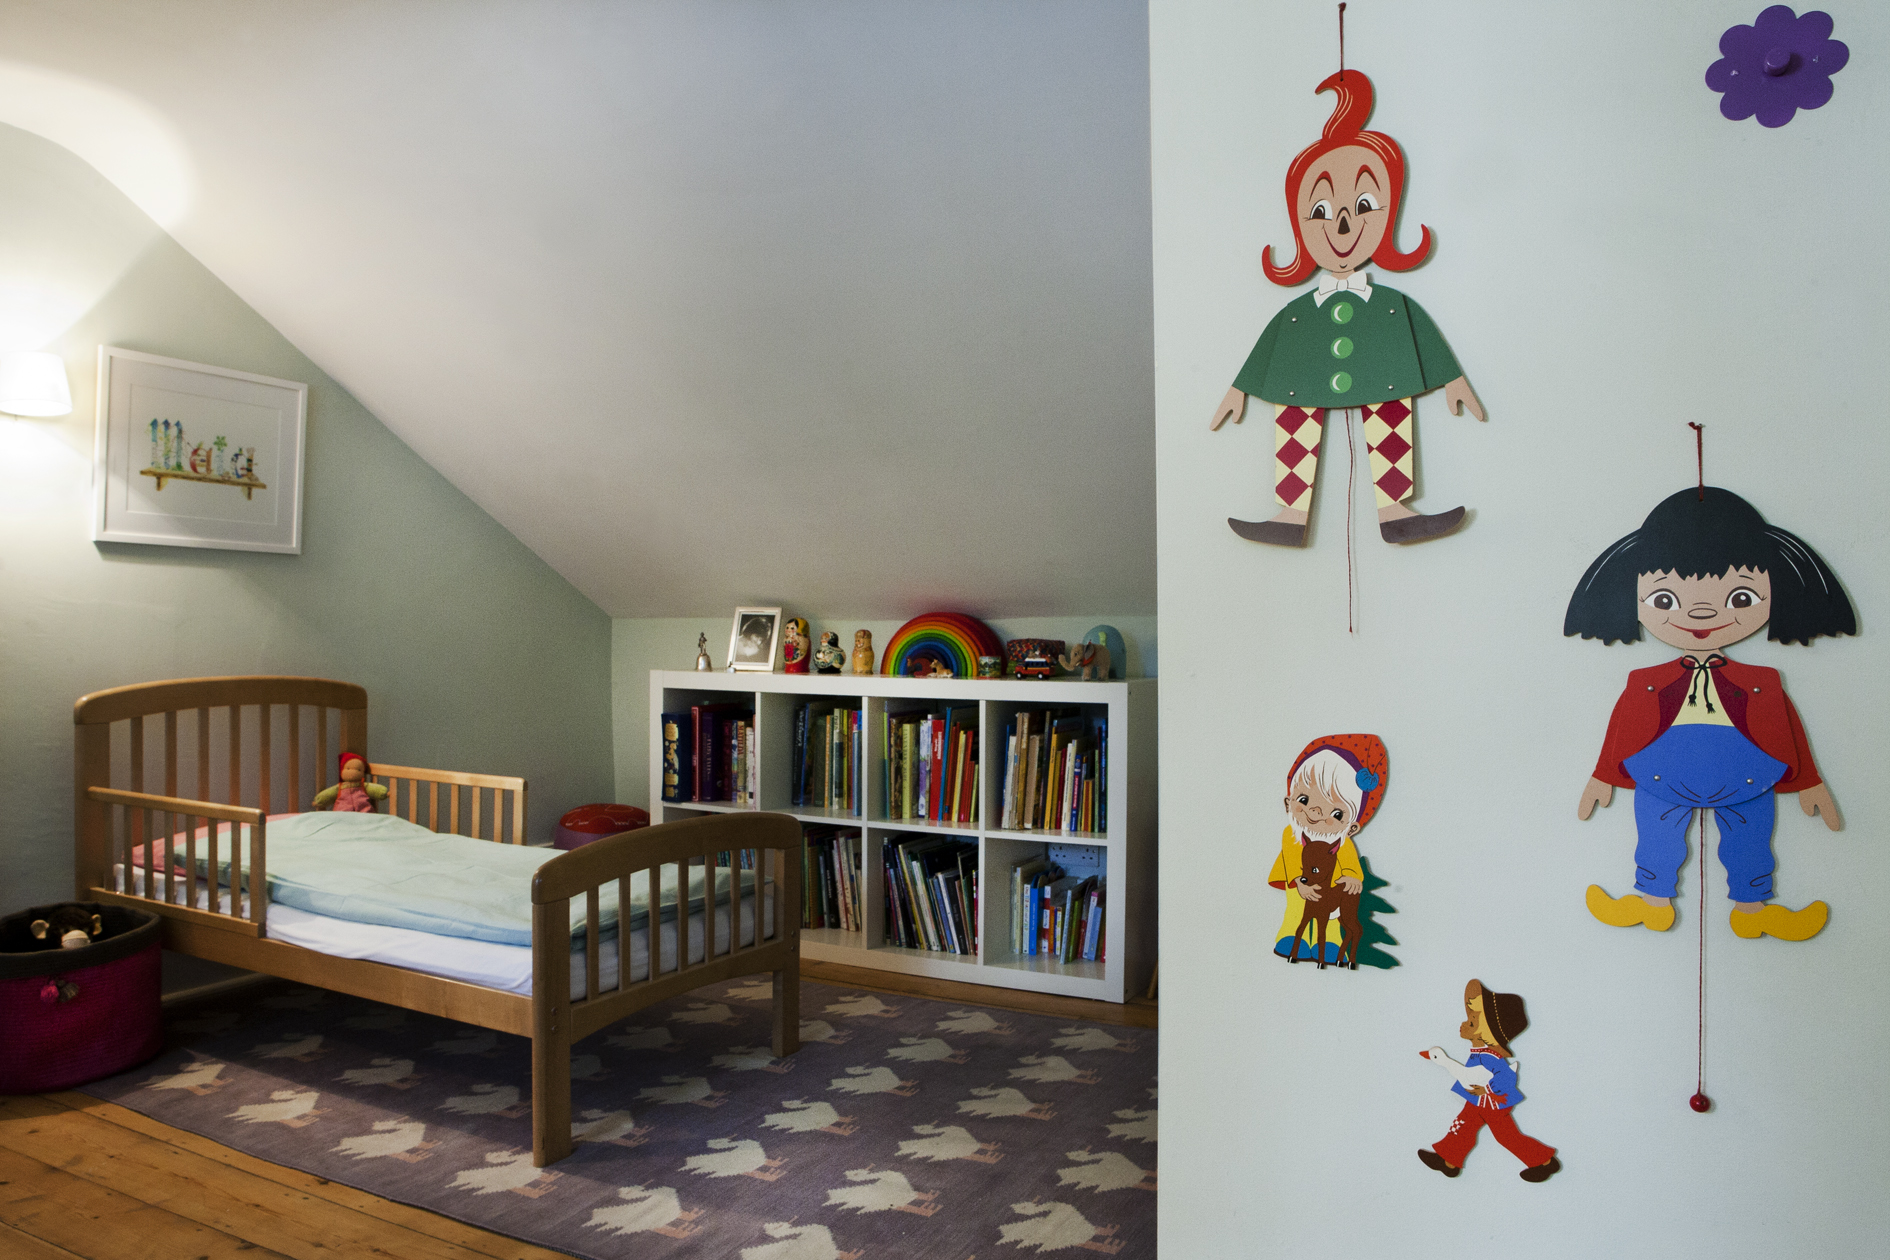 A lively children's room